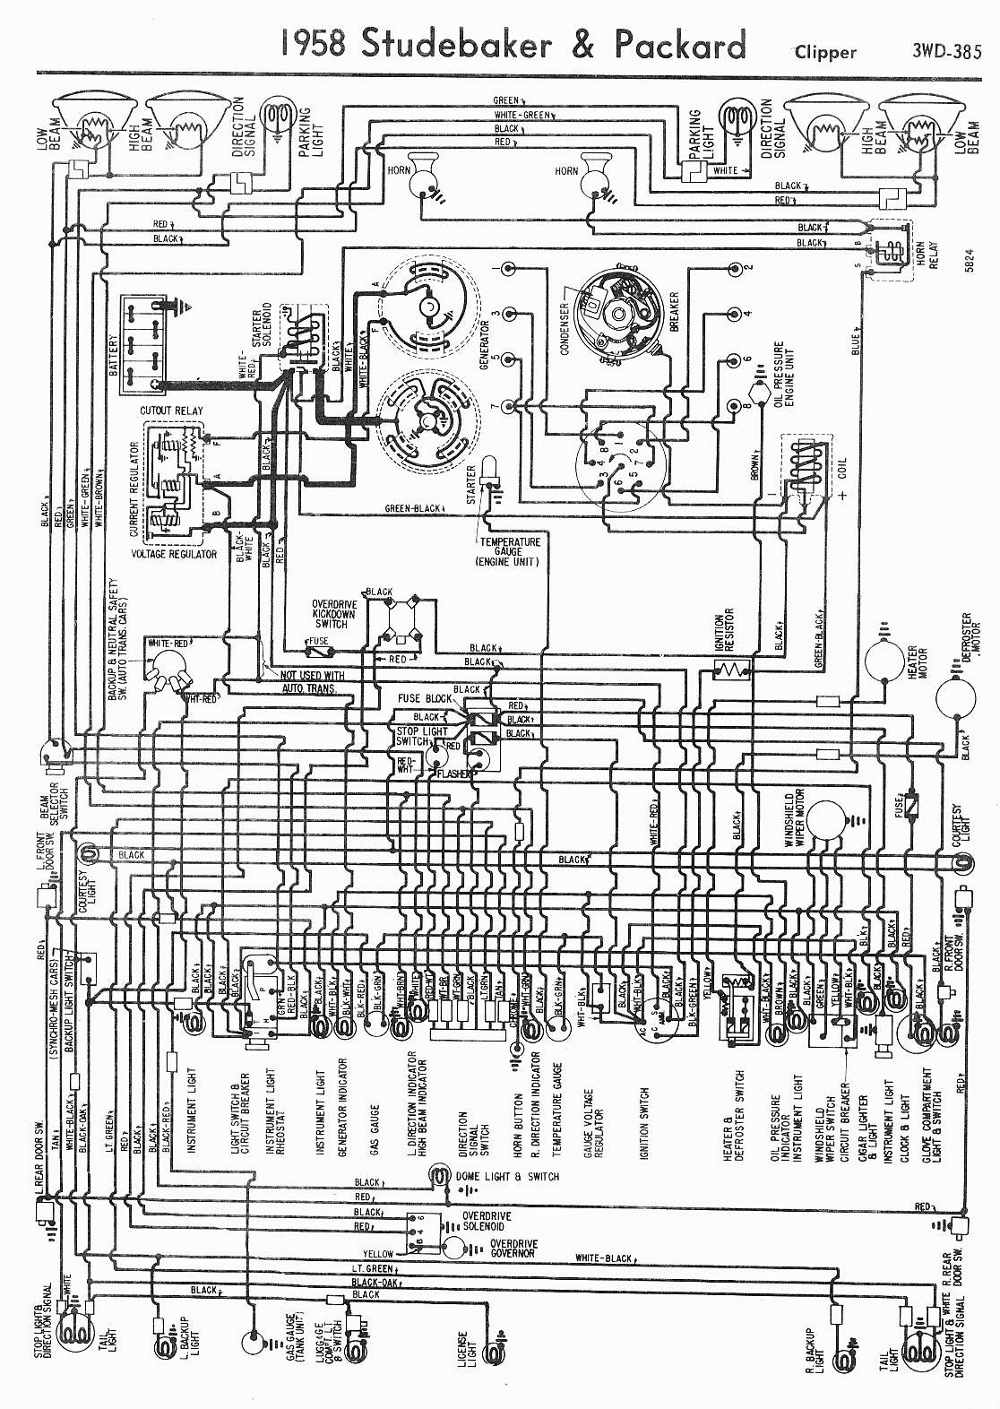 1958 Studebaker and Packard Clipper Wiring Diagram